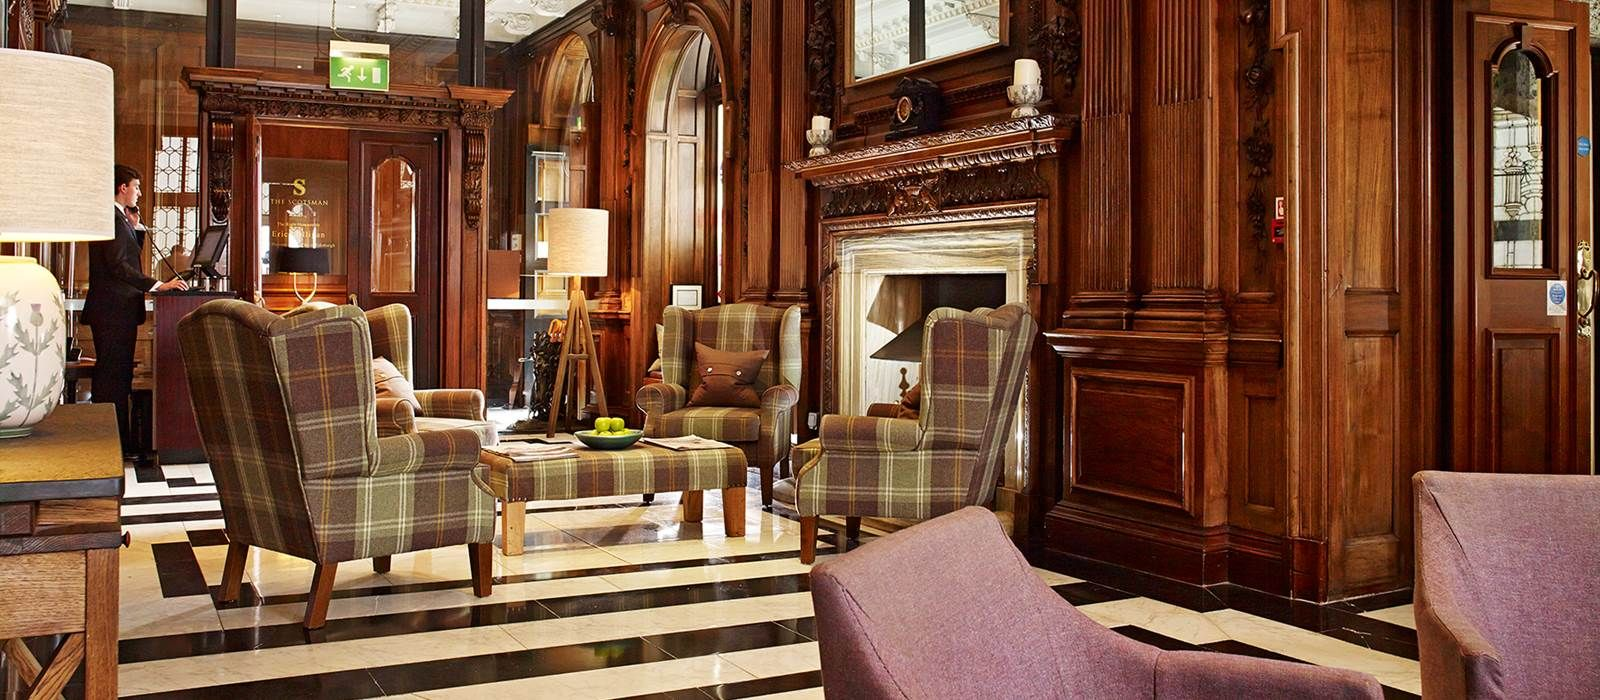 The Five Star Scotsman Hotel In Edinburgh A Luxury Boutique Famous World Over For Leading First Cl Services And Outstanding Guest